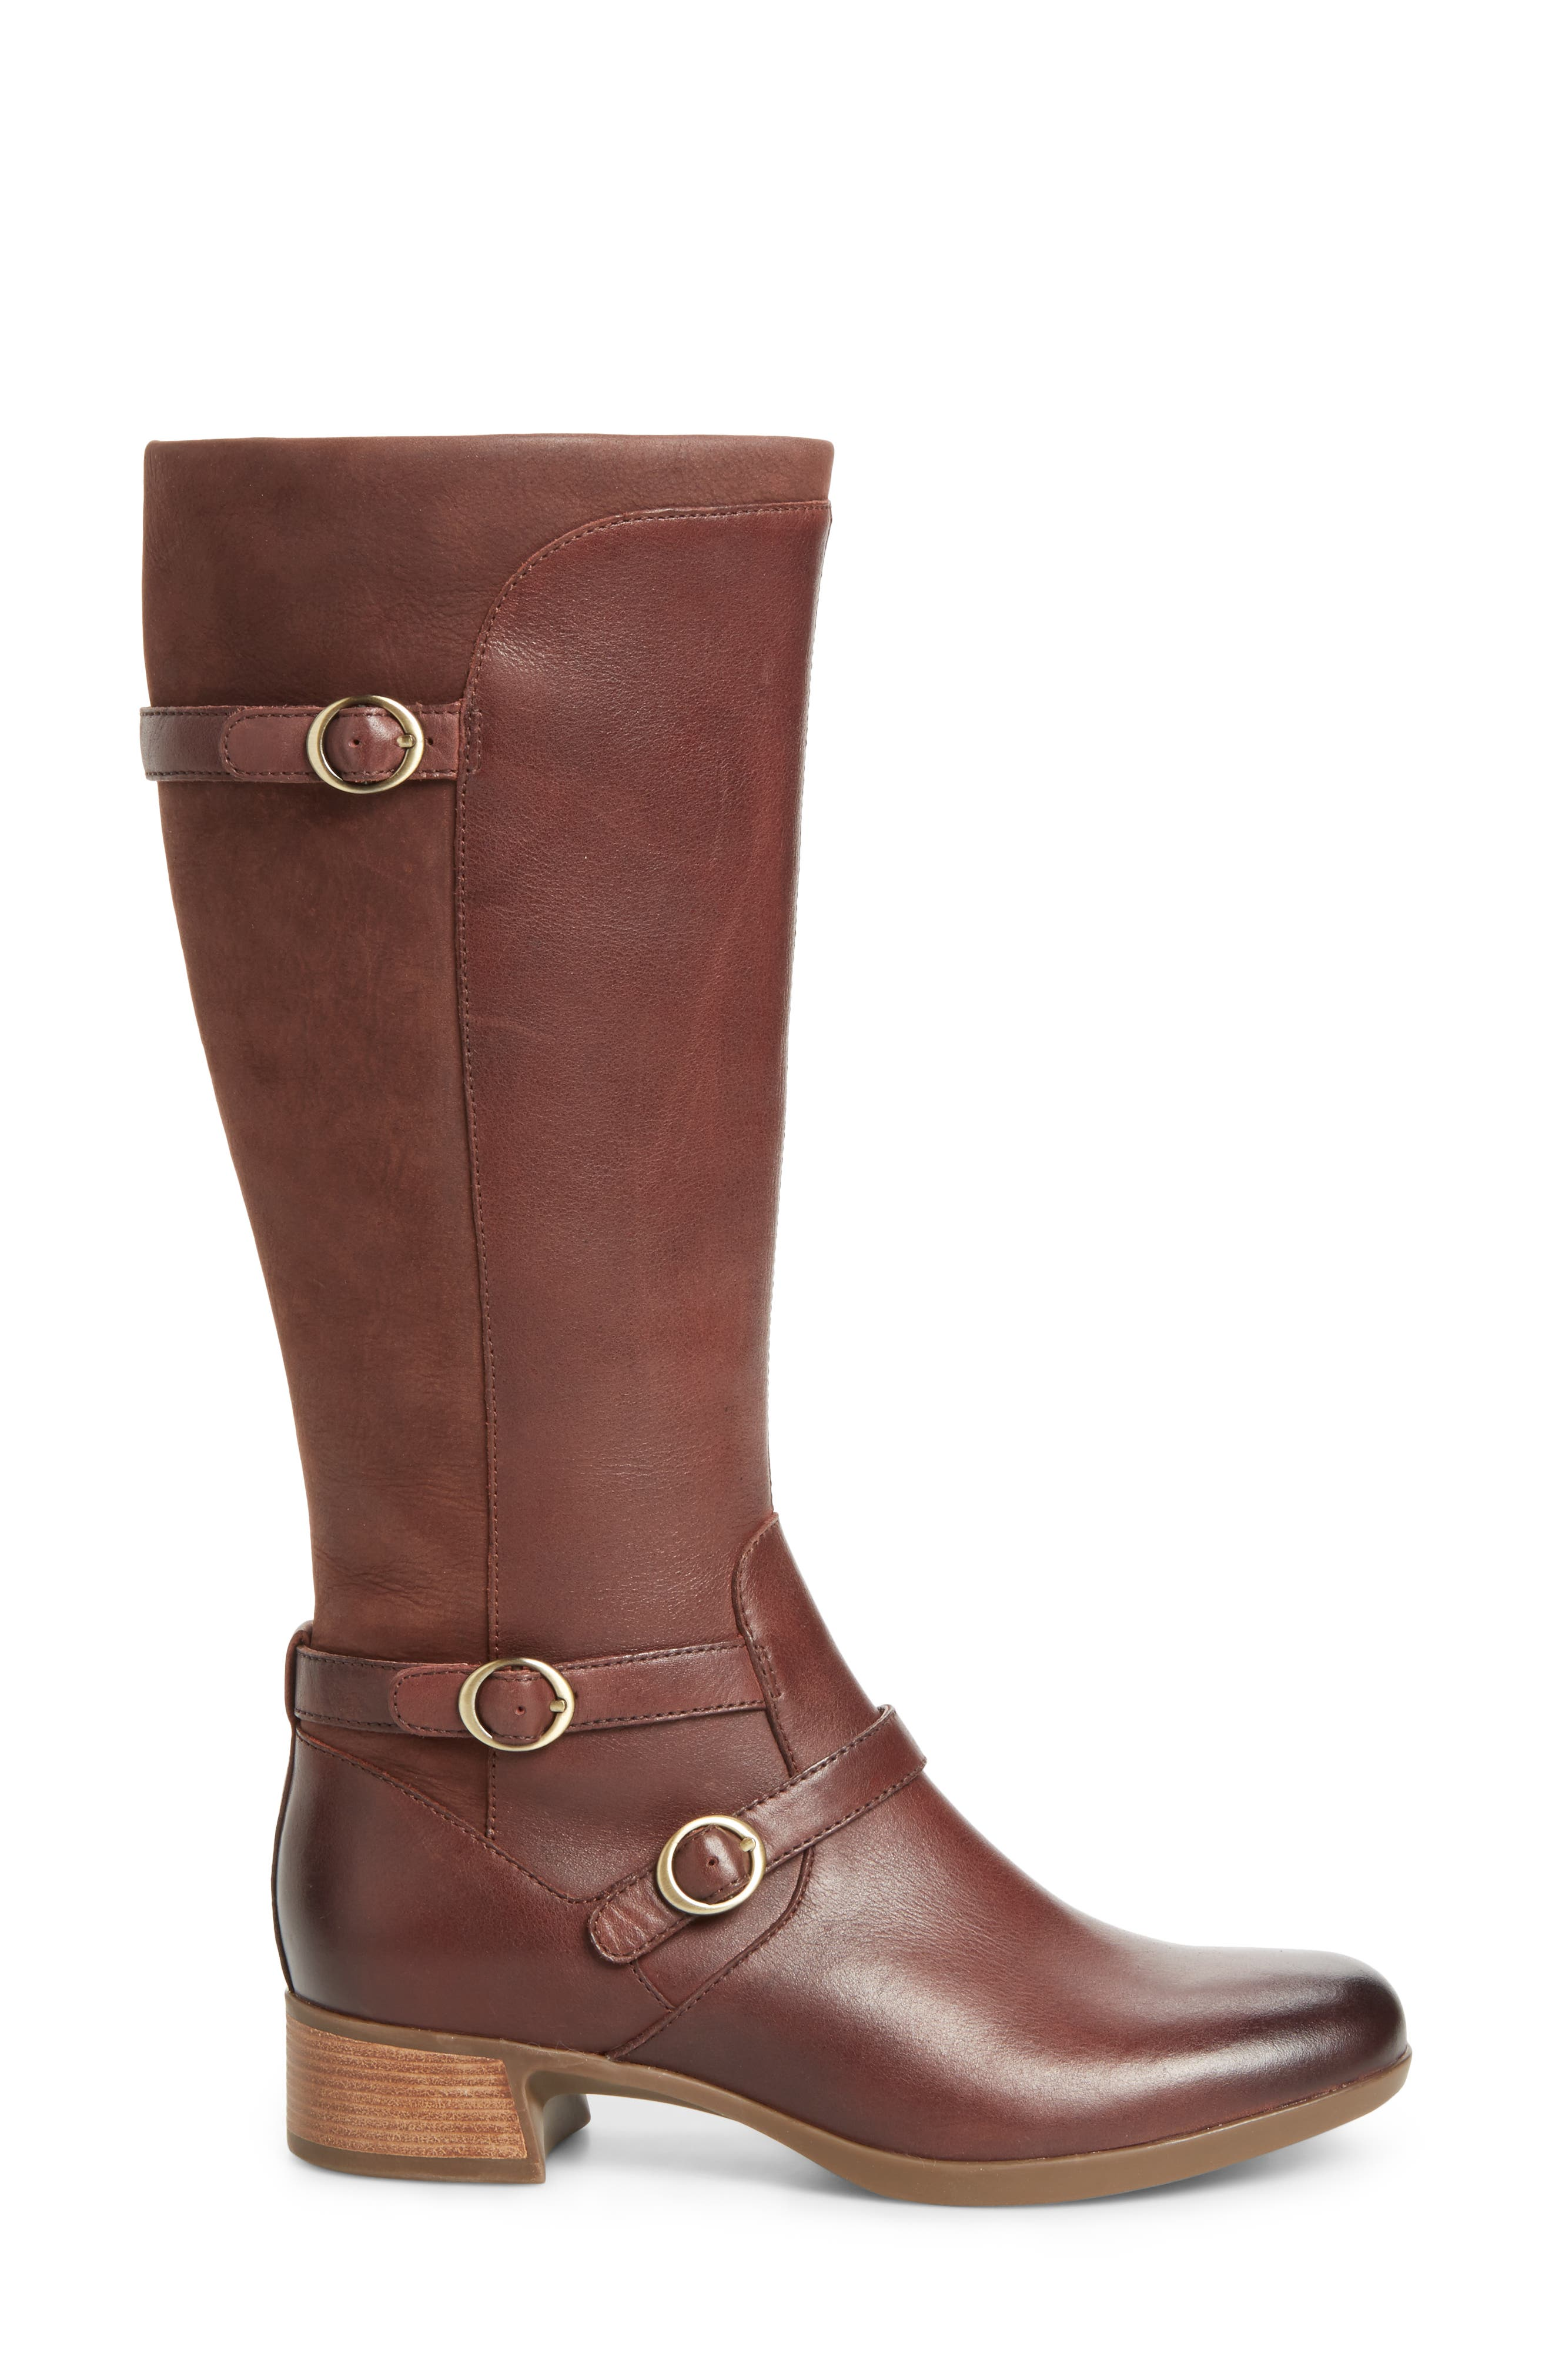 Lorna Tall Boot,                             Alternate thumbnail 3, color,                             Wine Burnished Nappa Leather